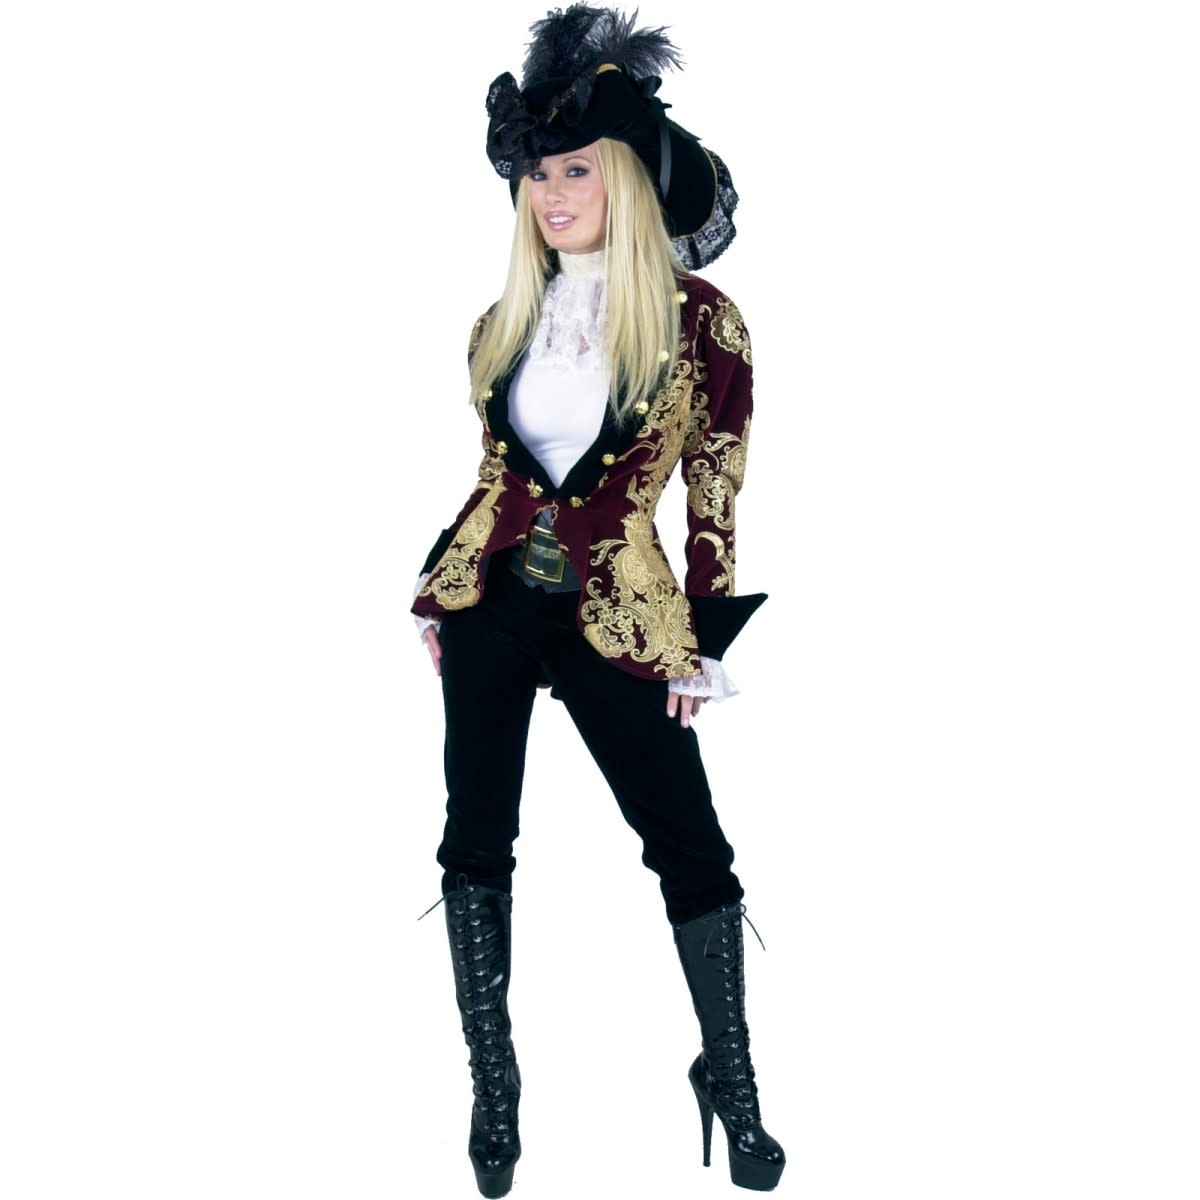 I found this costume look at theatrical dress